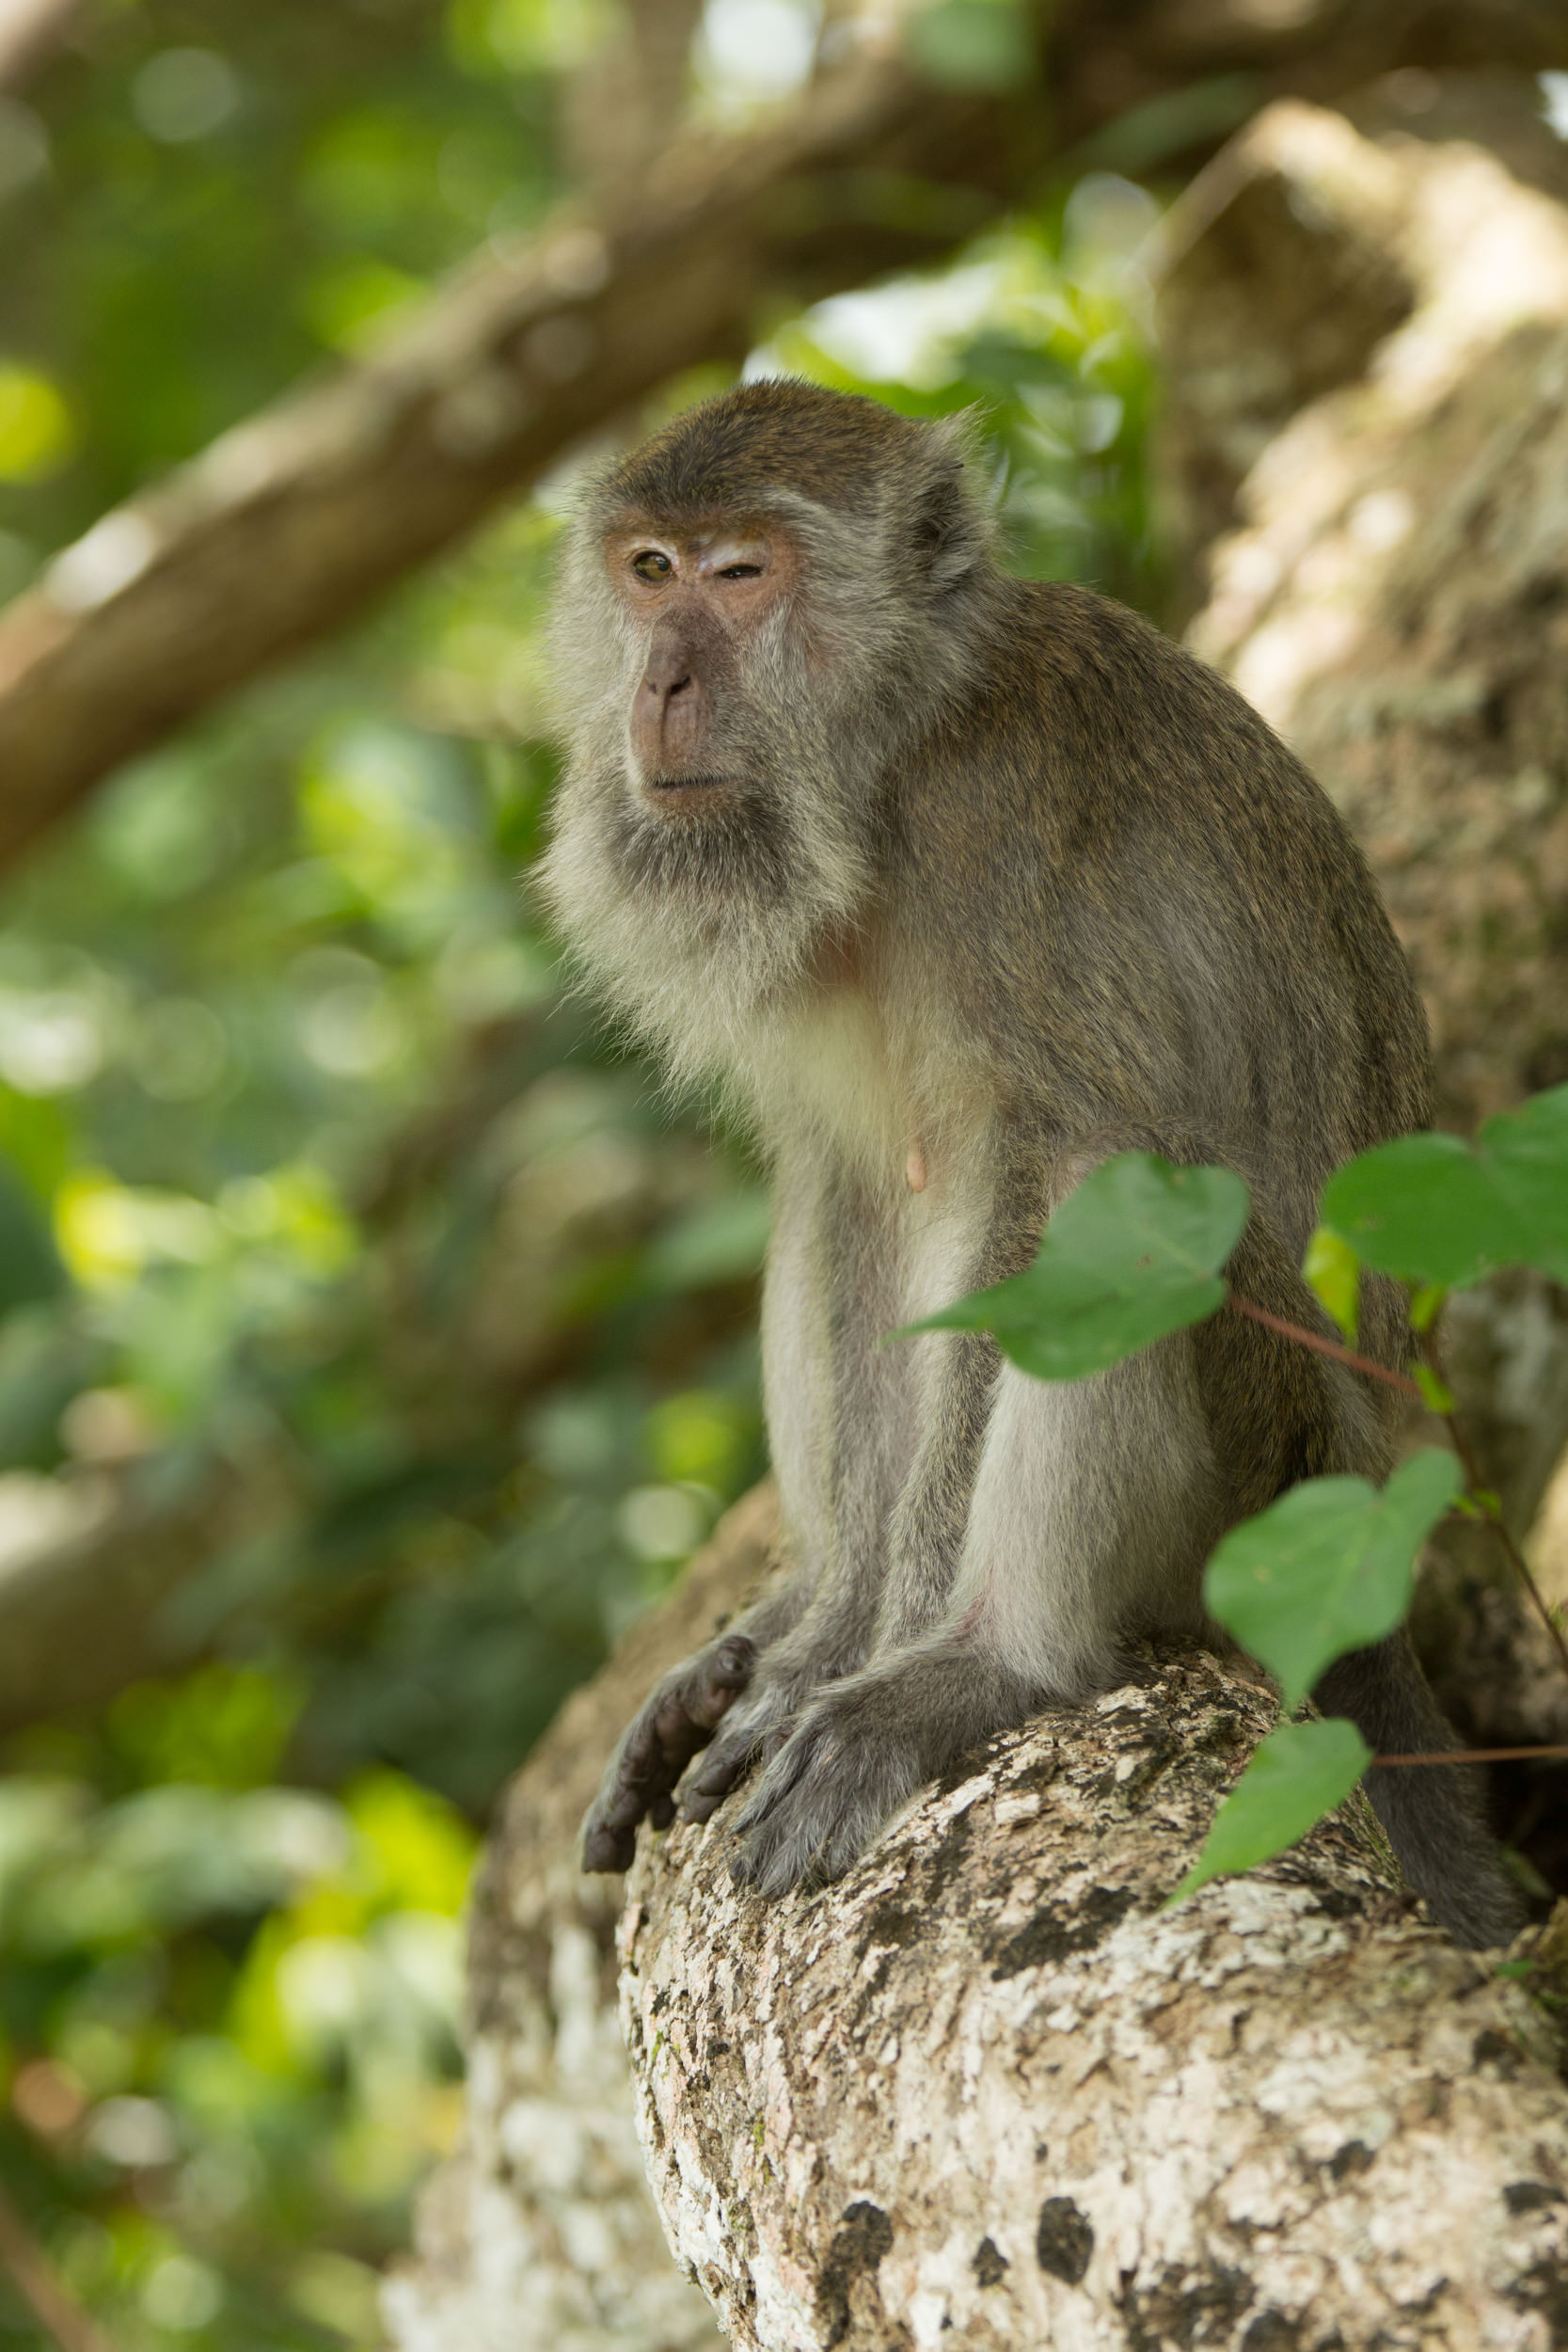 A long-tailed macaque sits on the roots of a tree after savaging on the ground.